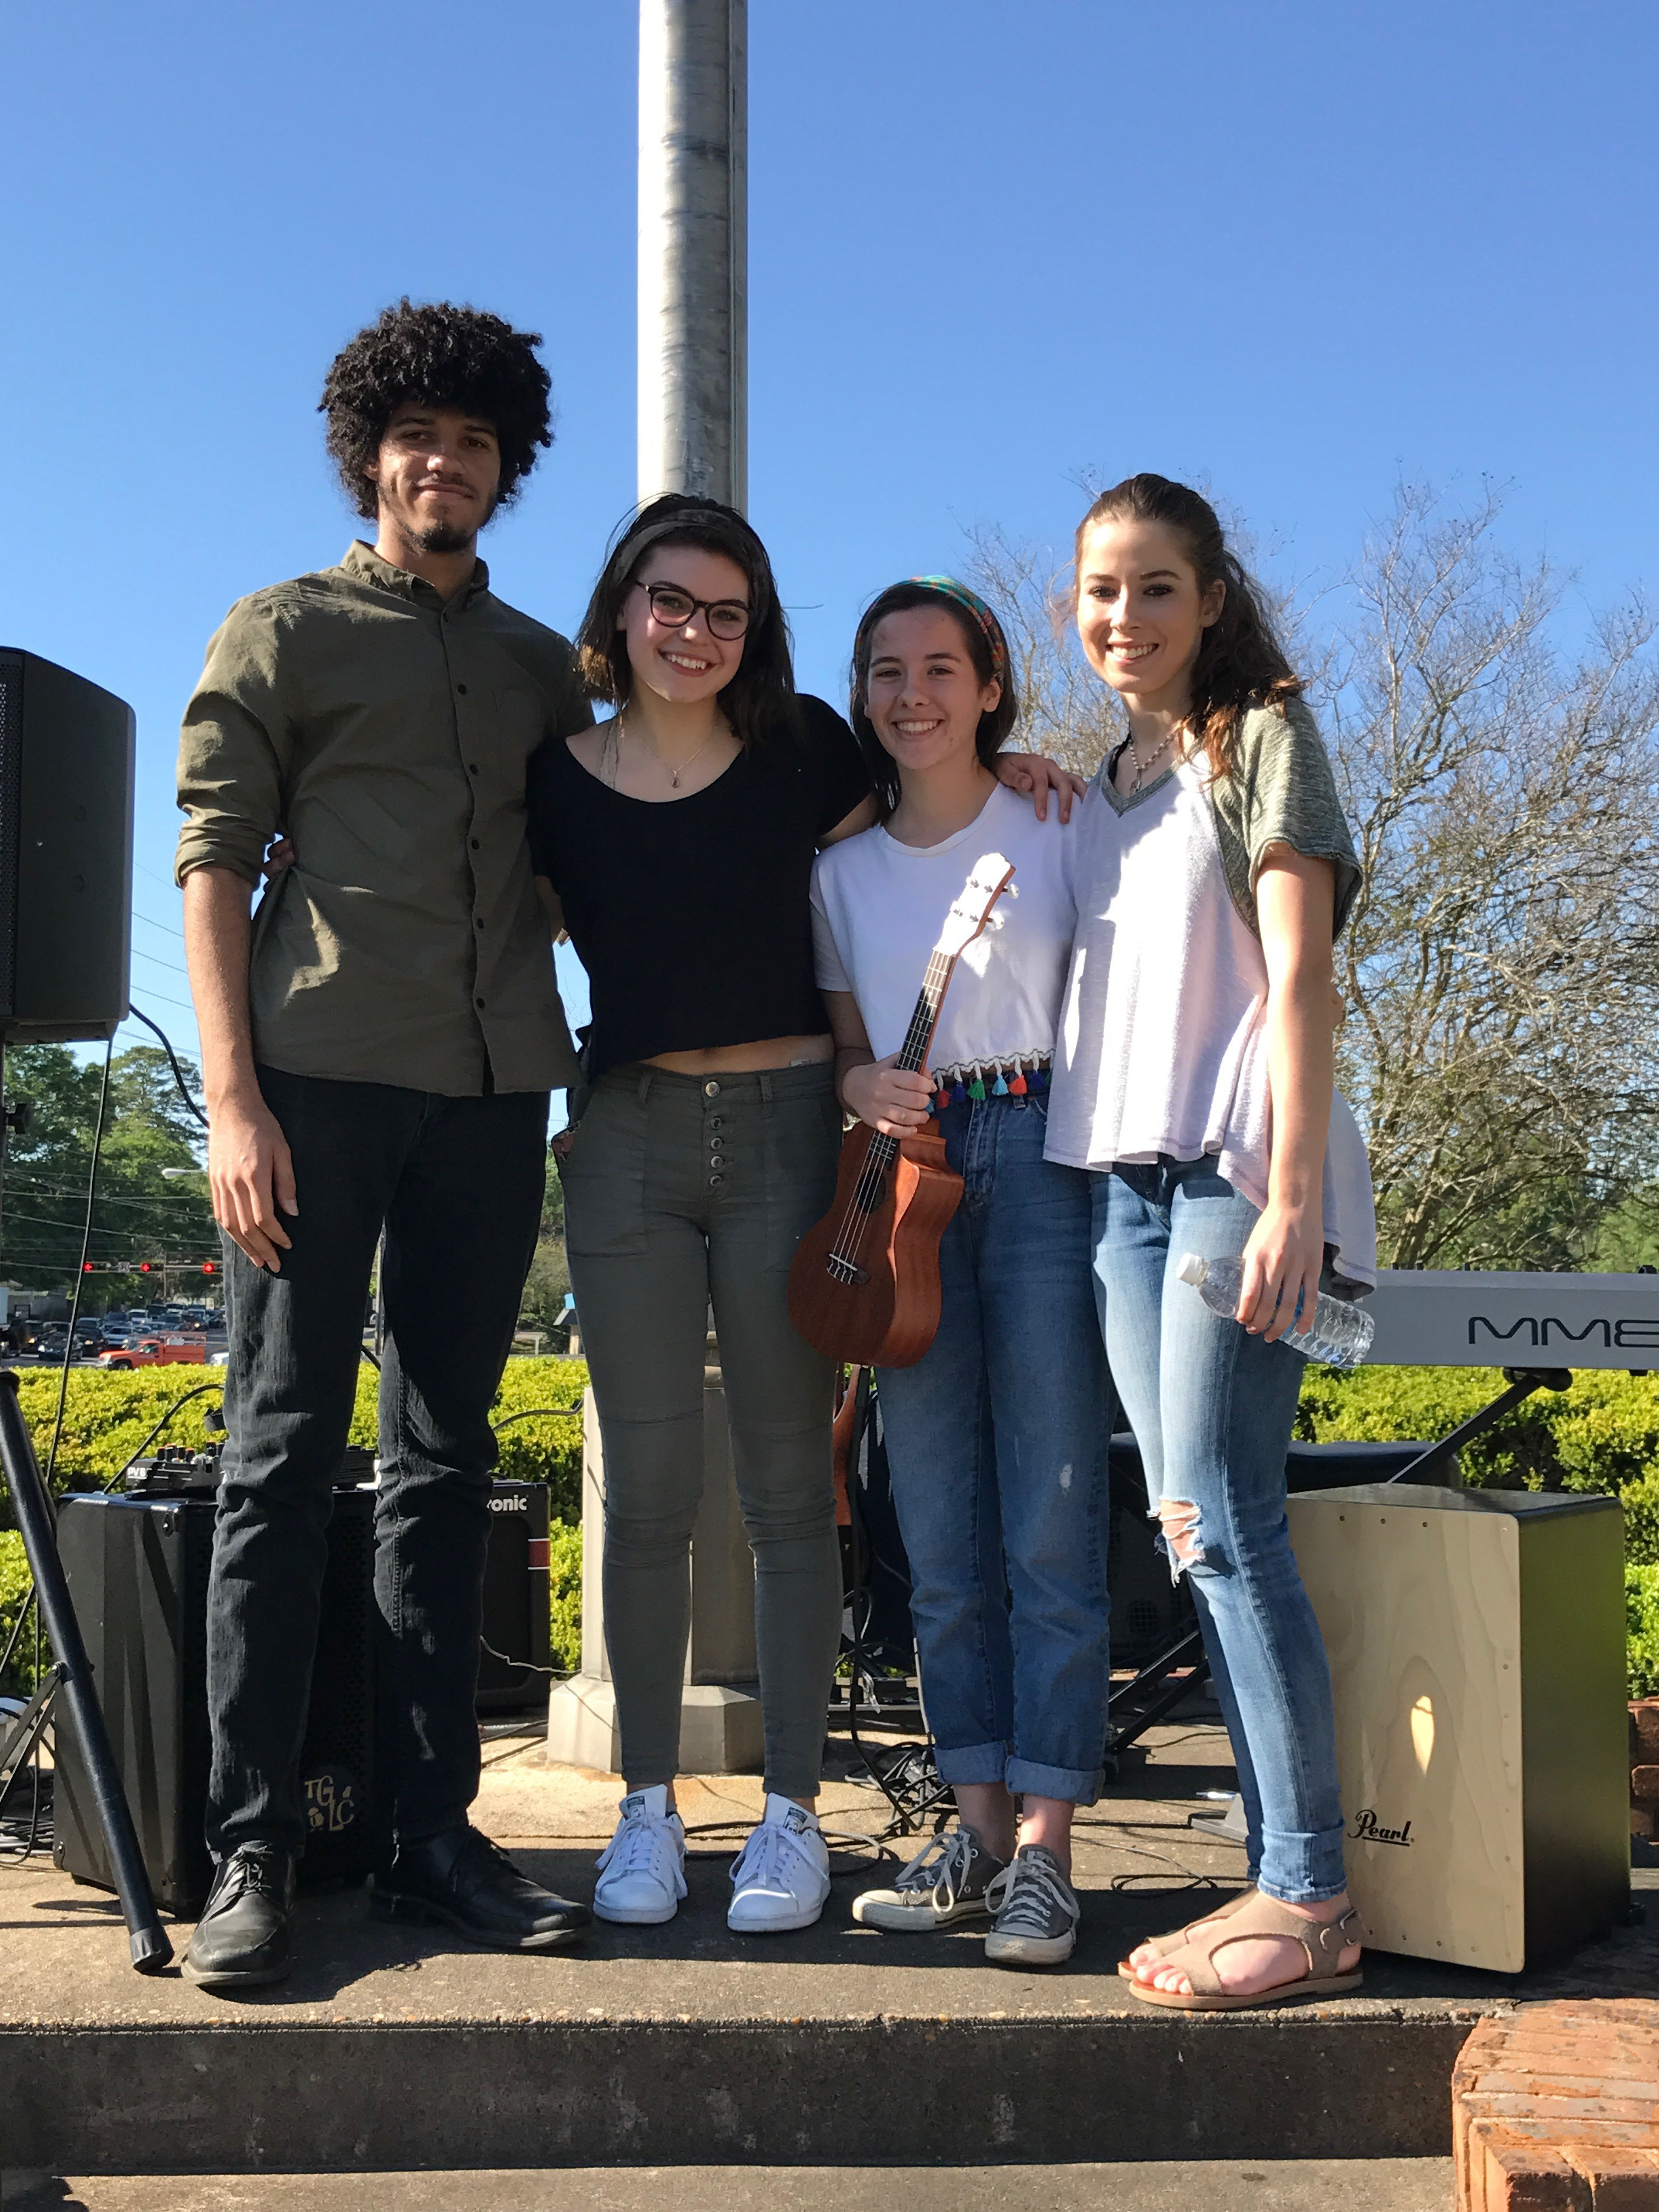 The Happenings (Josiah Pye, Erin Hill, Alaina Stephens, Kennedy Knisley) at the Tallahassee Democrat.